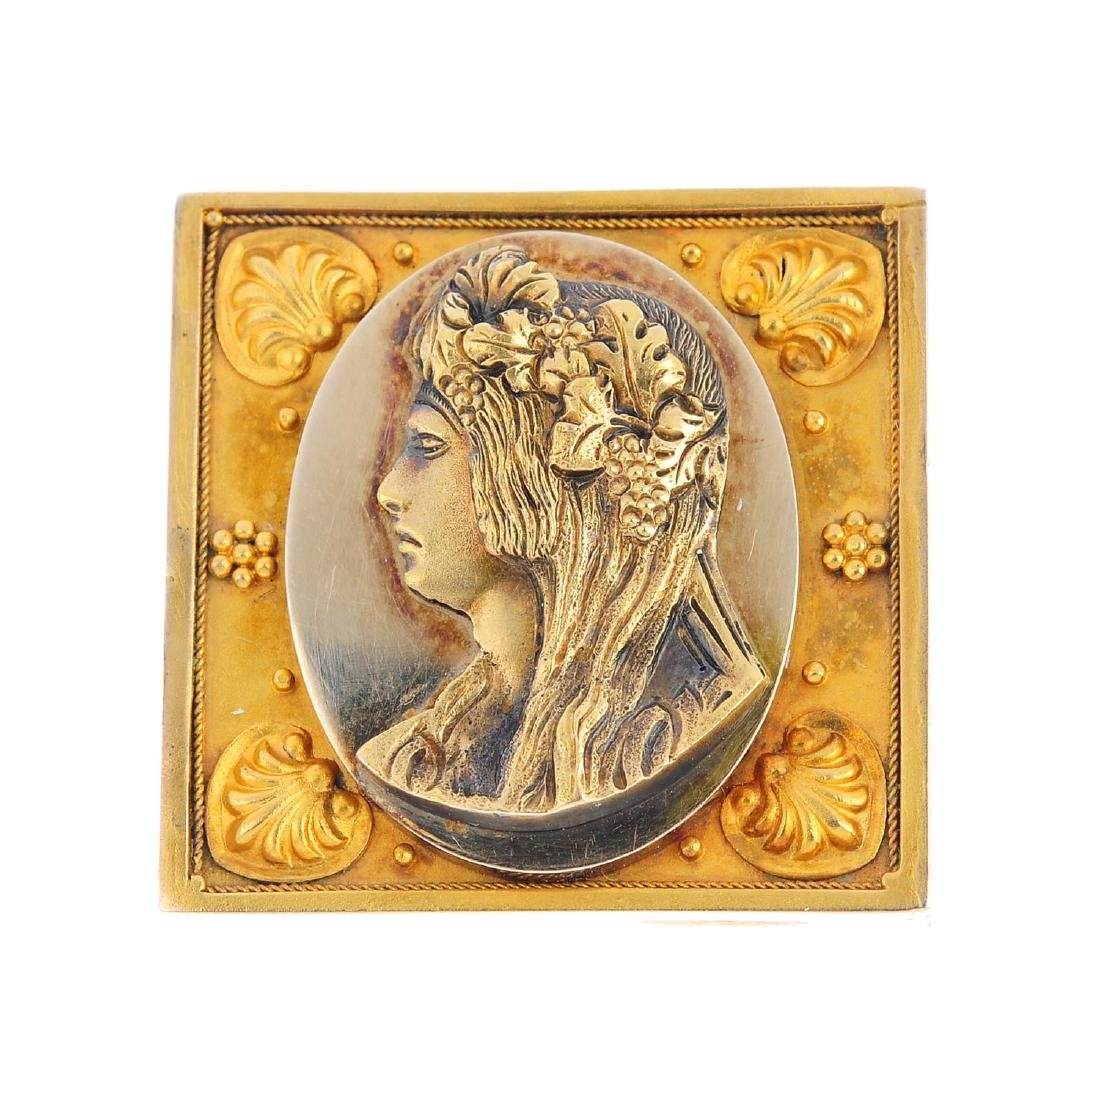 A late Victorian brooch. Of bi-colour design, depicting